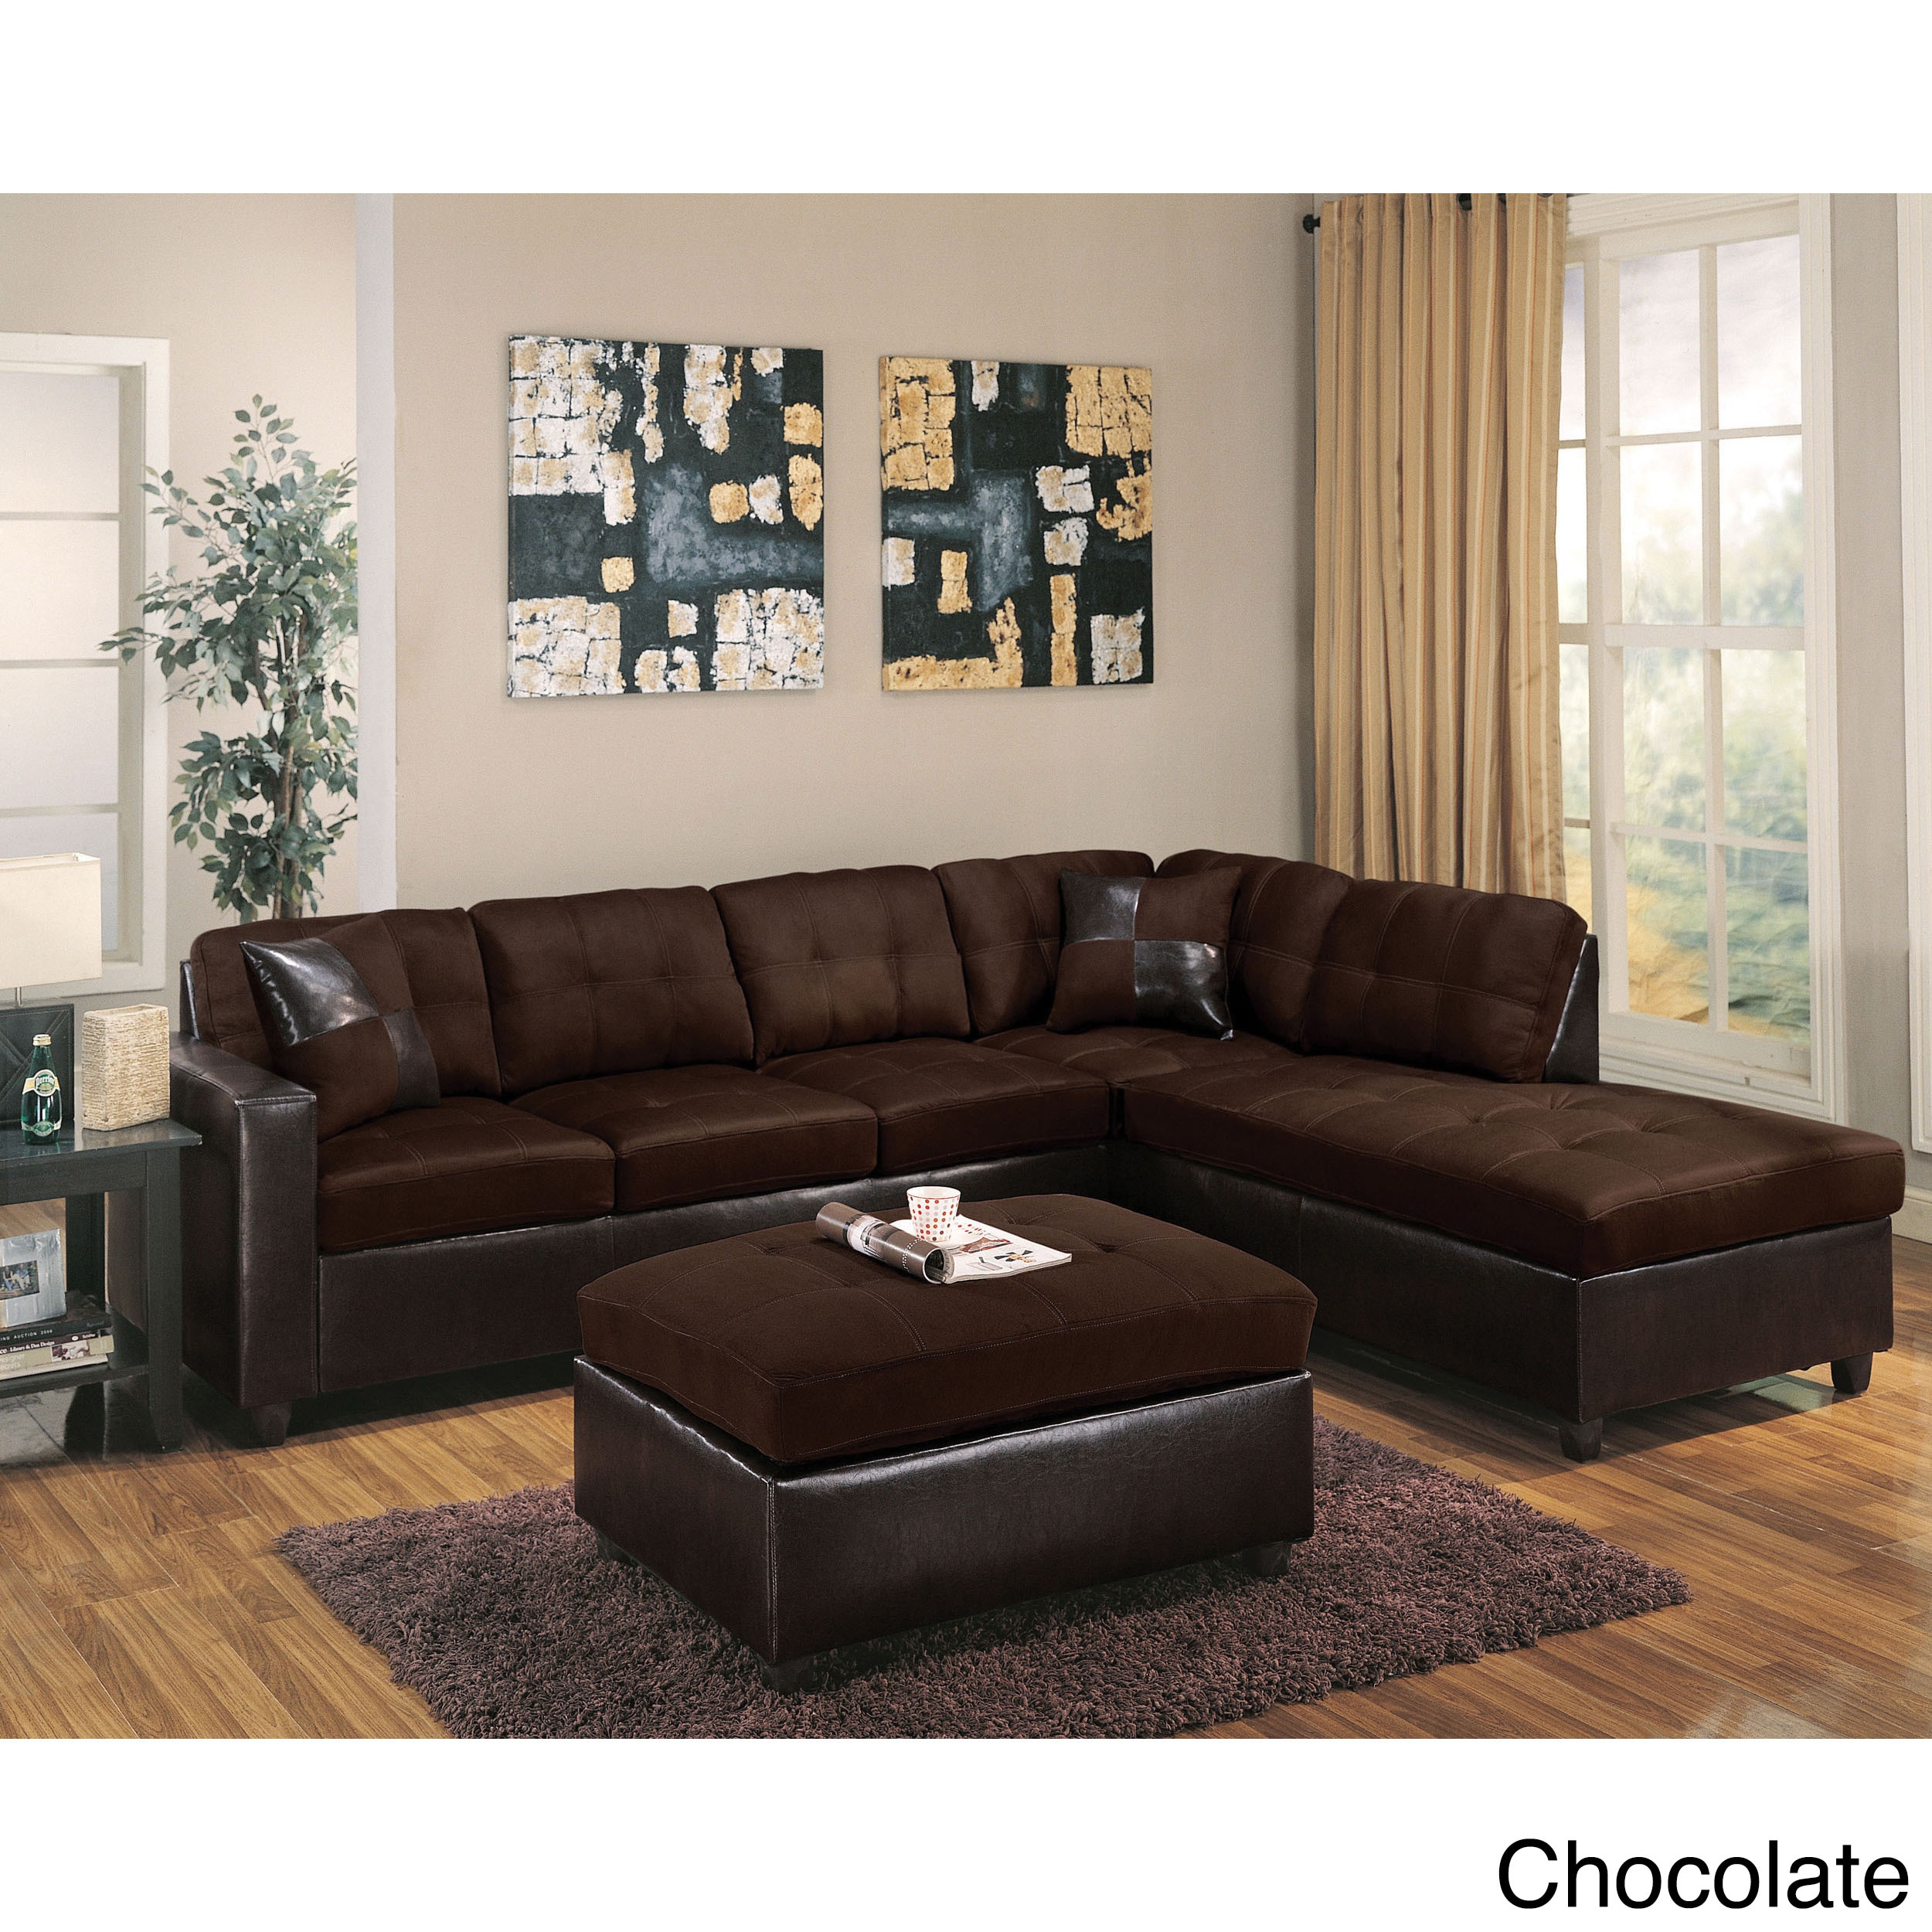 Milano Reversible Sectional Sofa In Chocolate Easy Rider And Espresso Pu Free Shipping Today 16933927